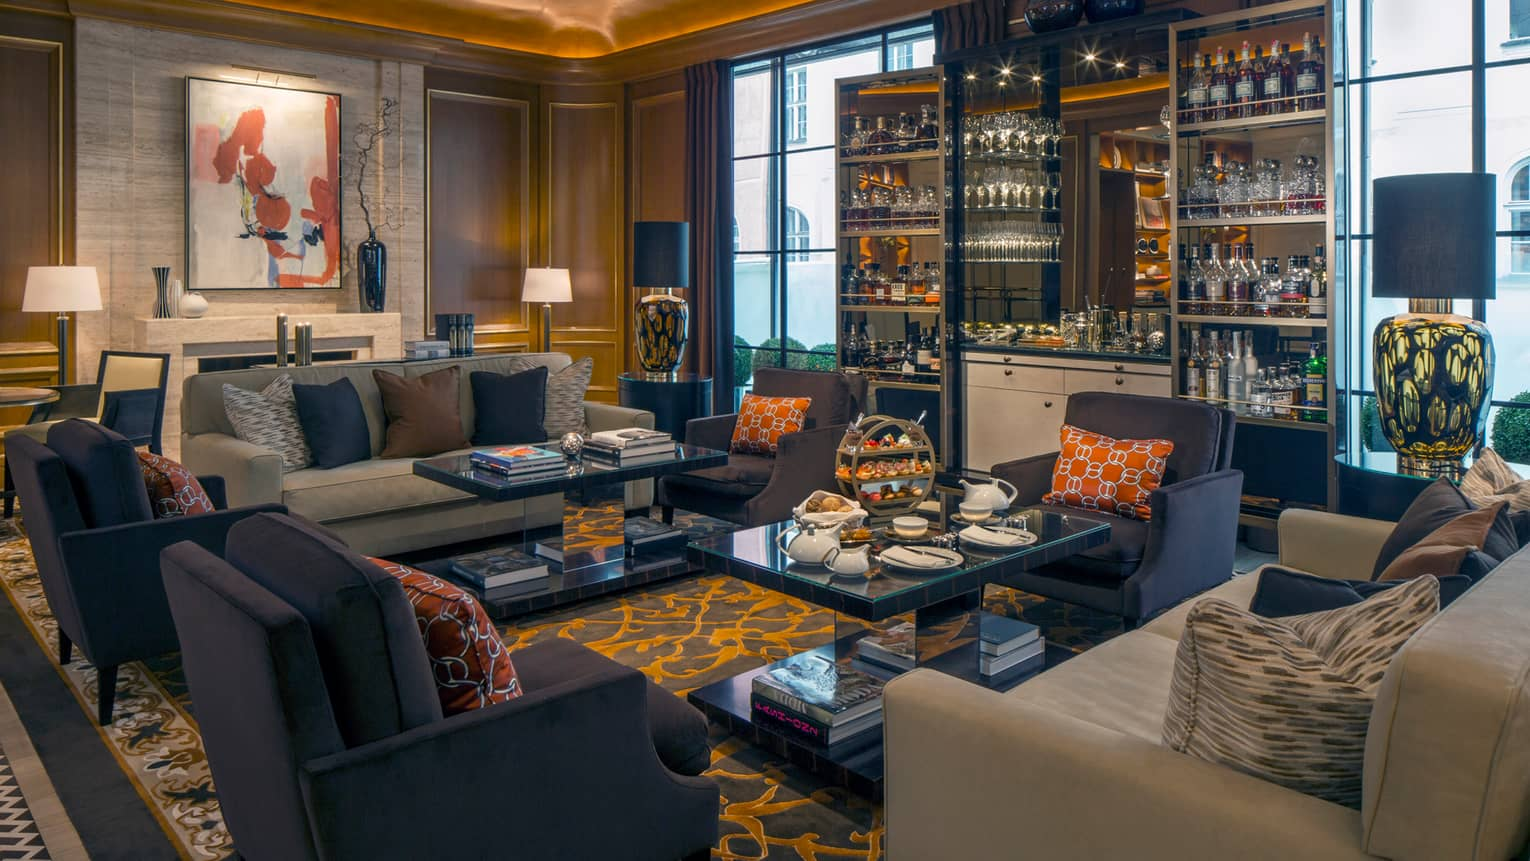 Dark blue armchairs, light sofas around dark glass coffee tables in front of display cabinet with wine, liquor, glasses